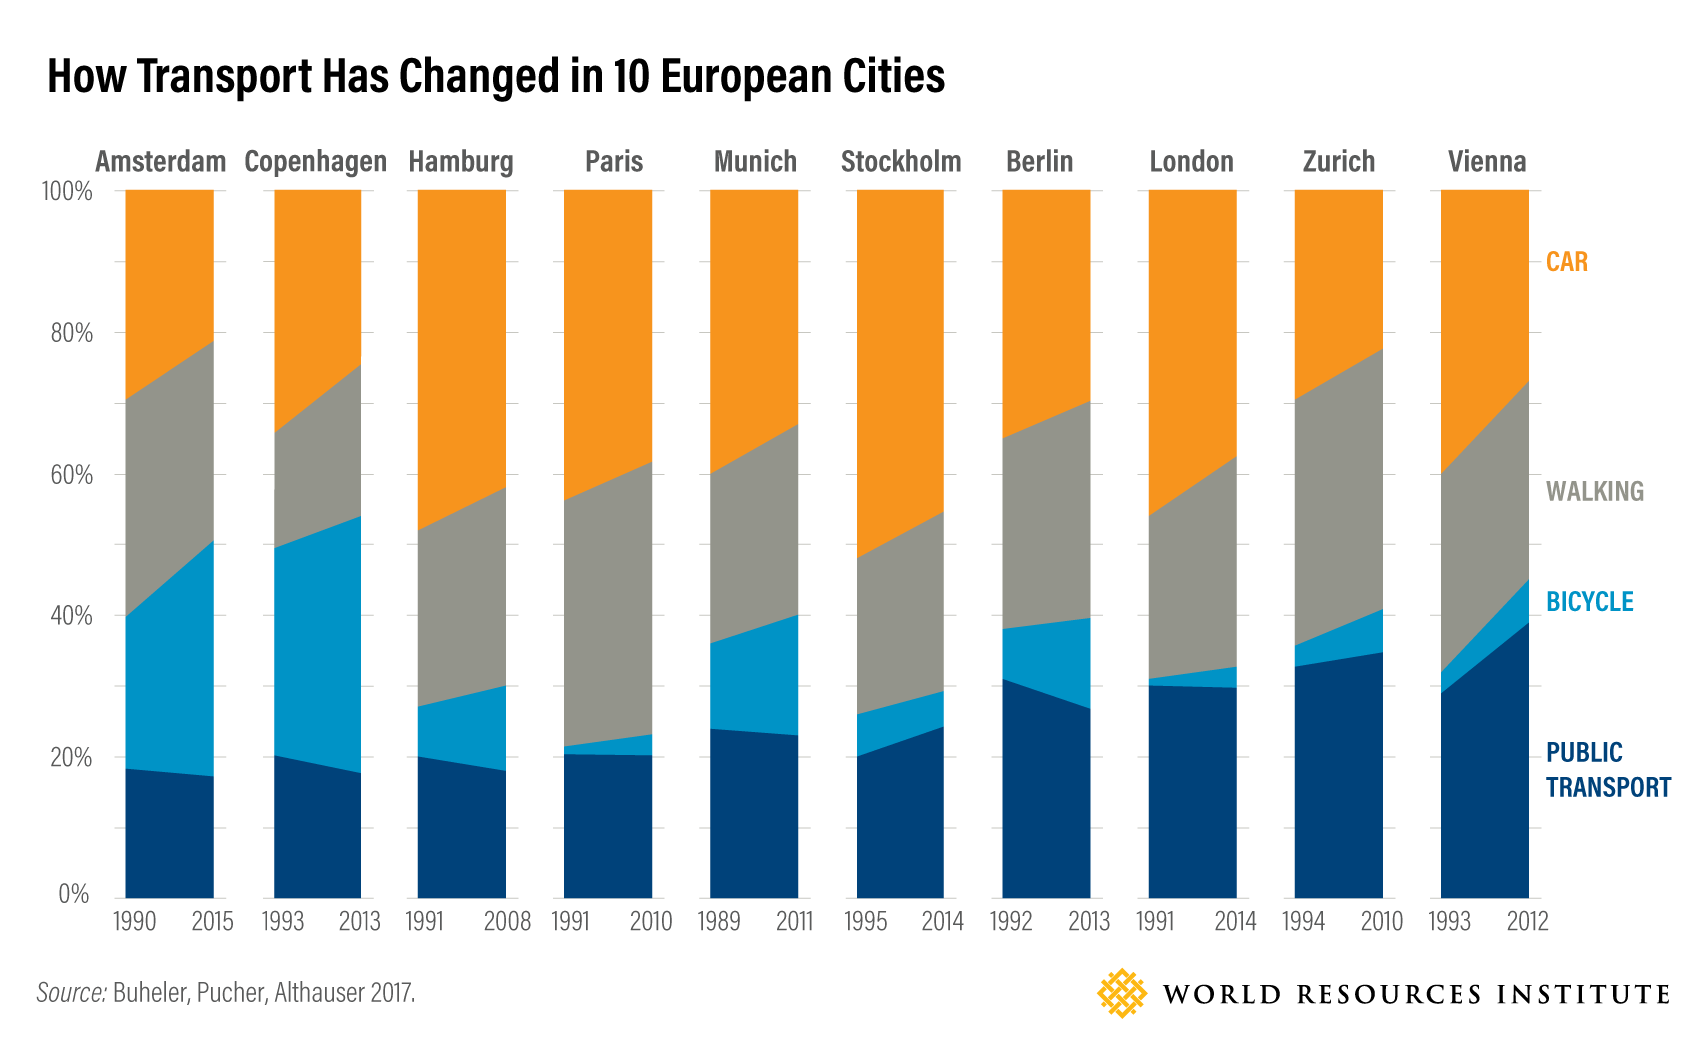 How Transport Has Changed in 10 European Cities